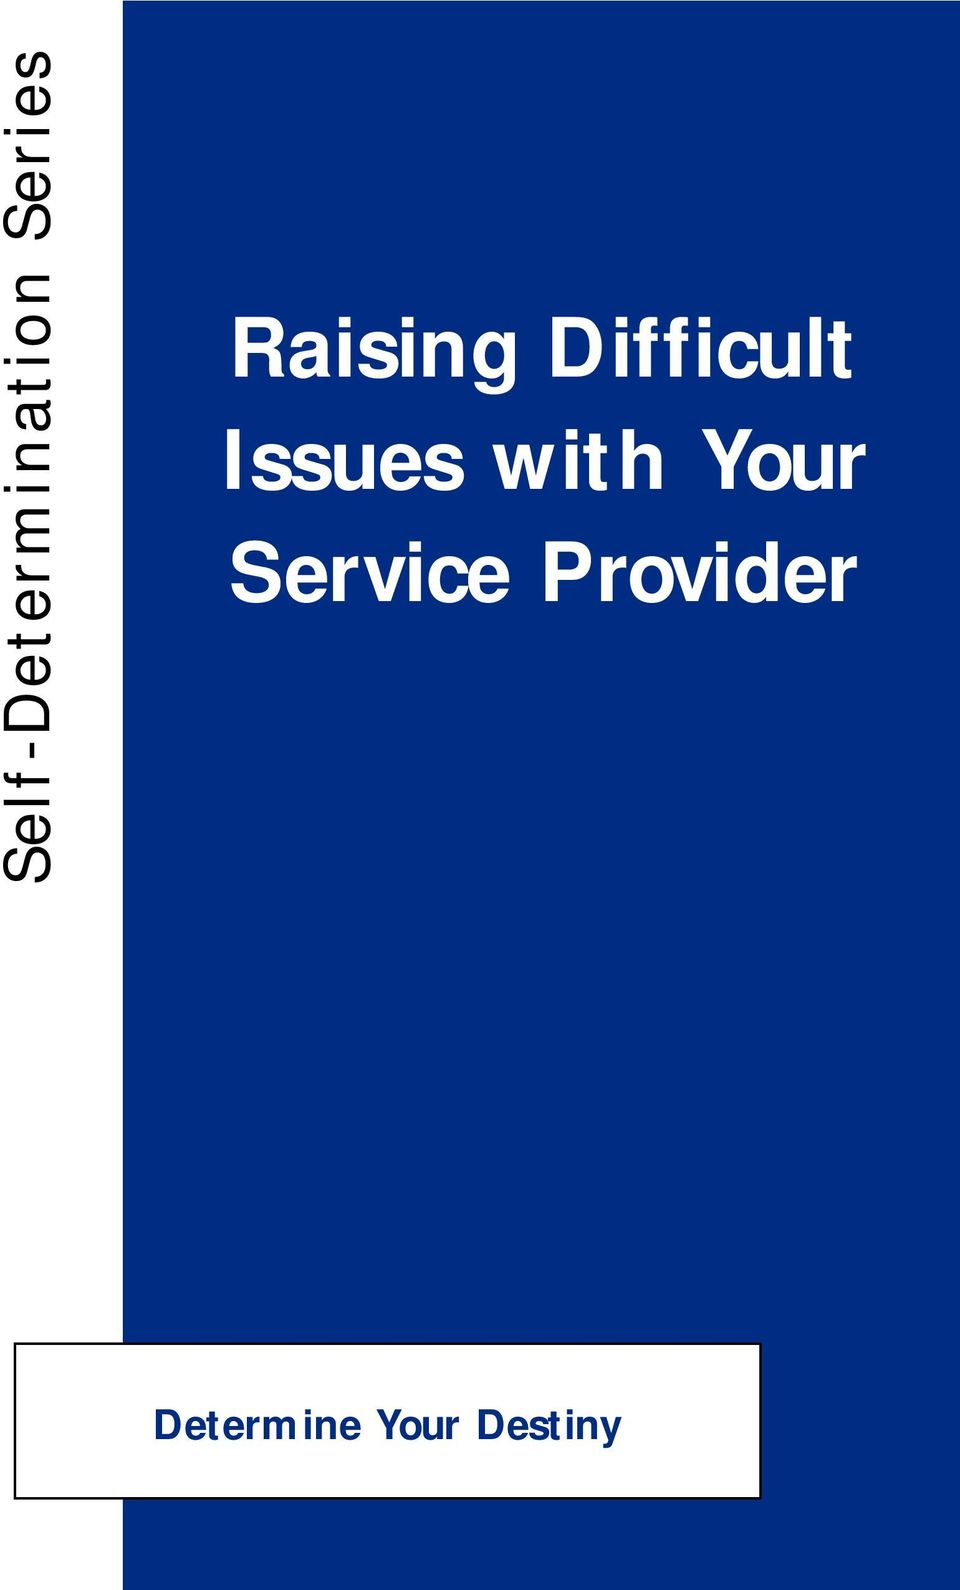 Issues with Your Service